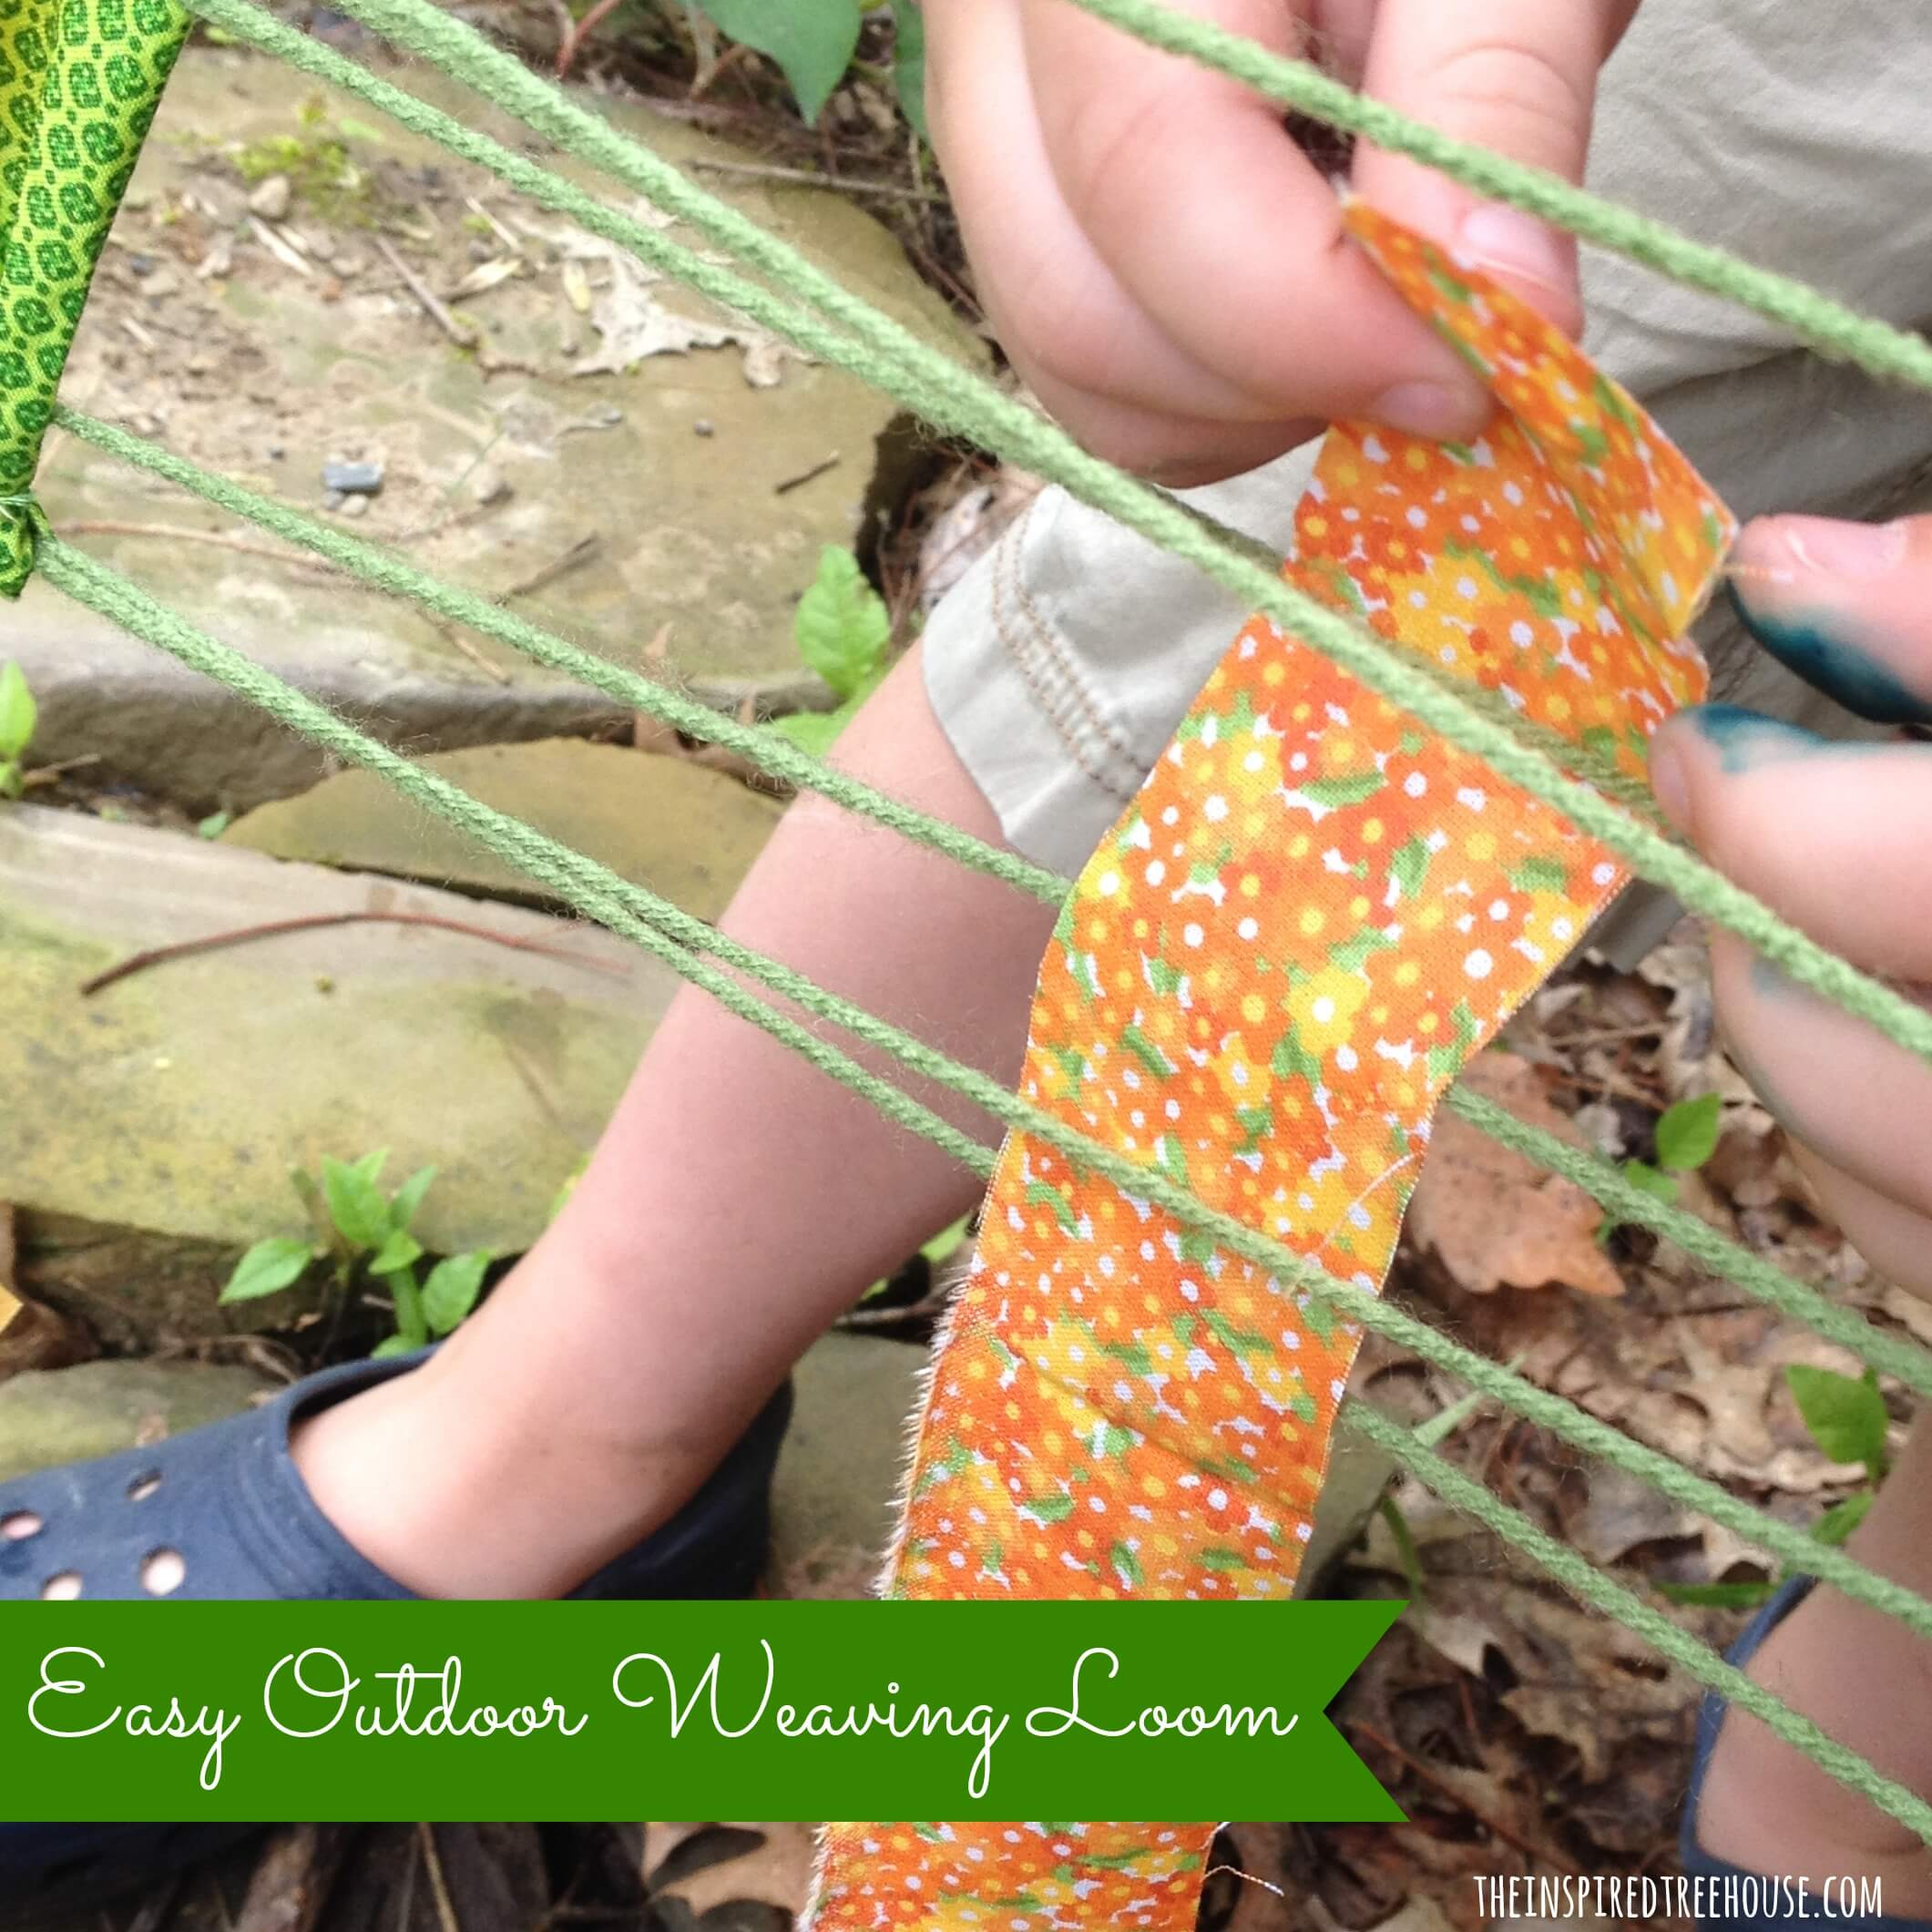 fine motor activities easy outdoor weaving loom2